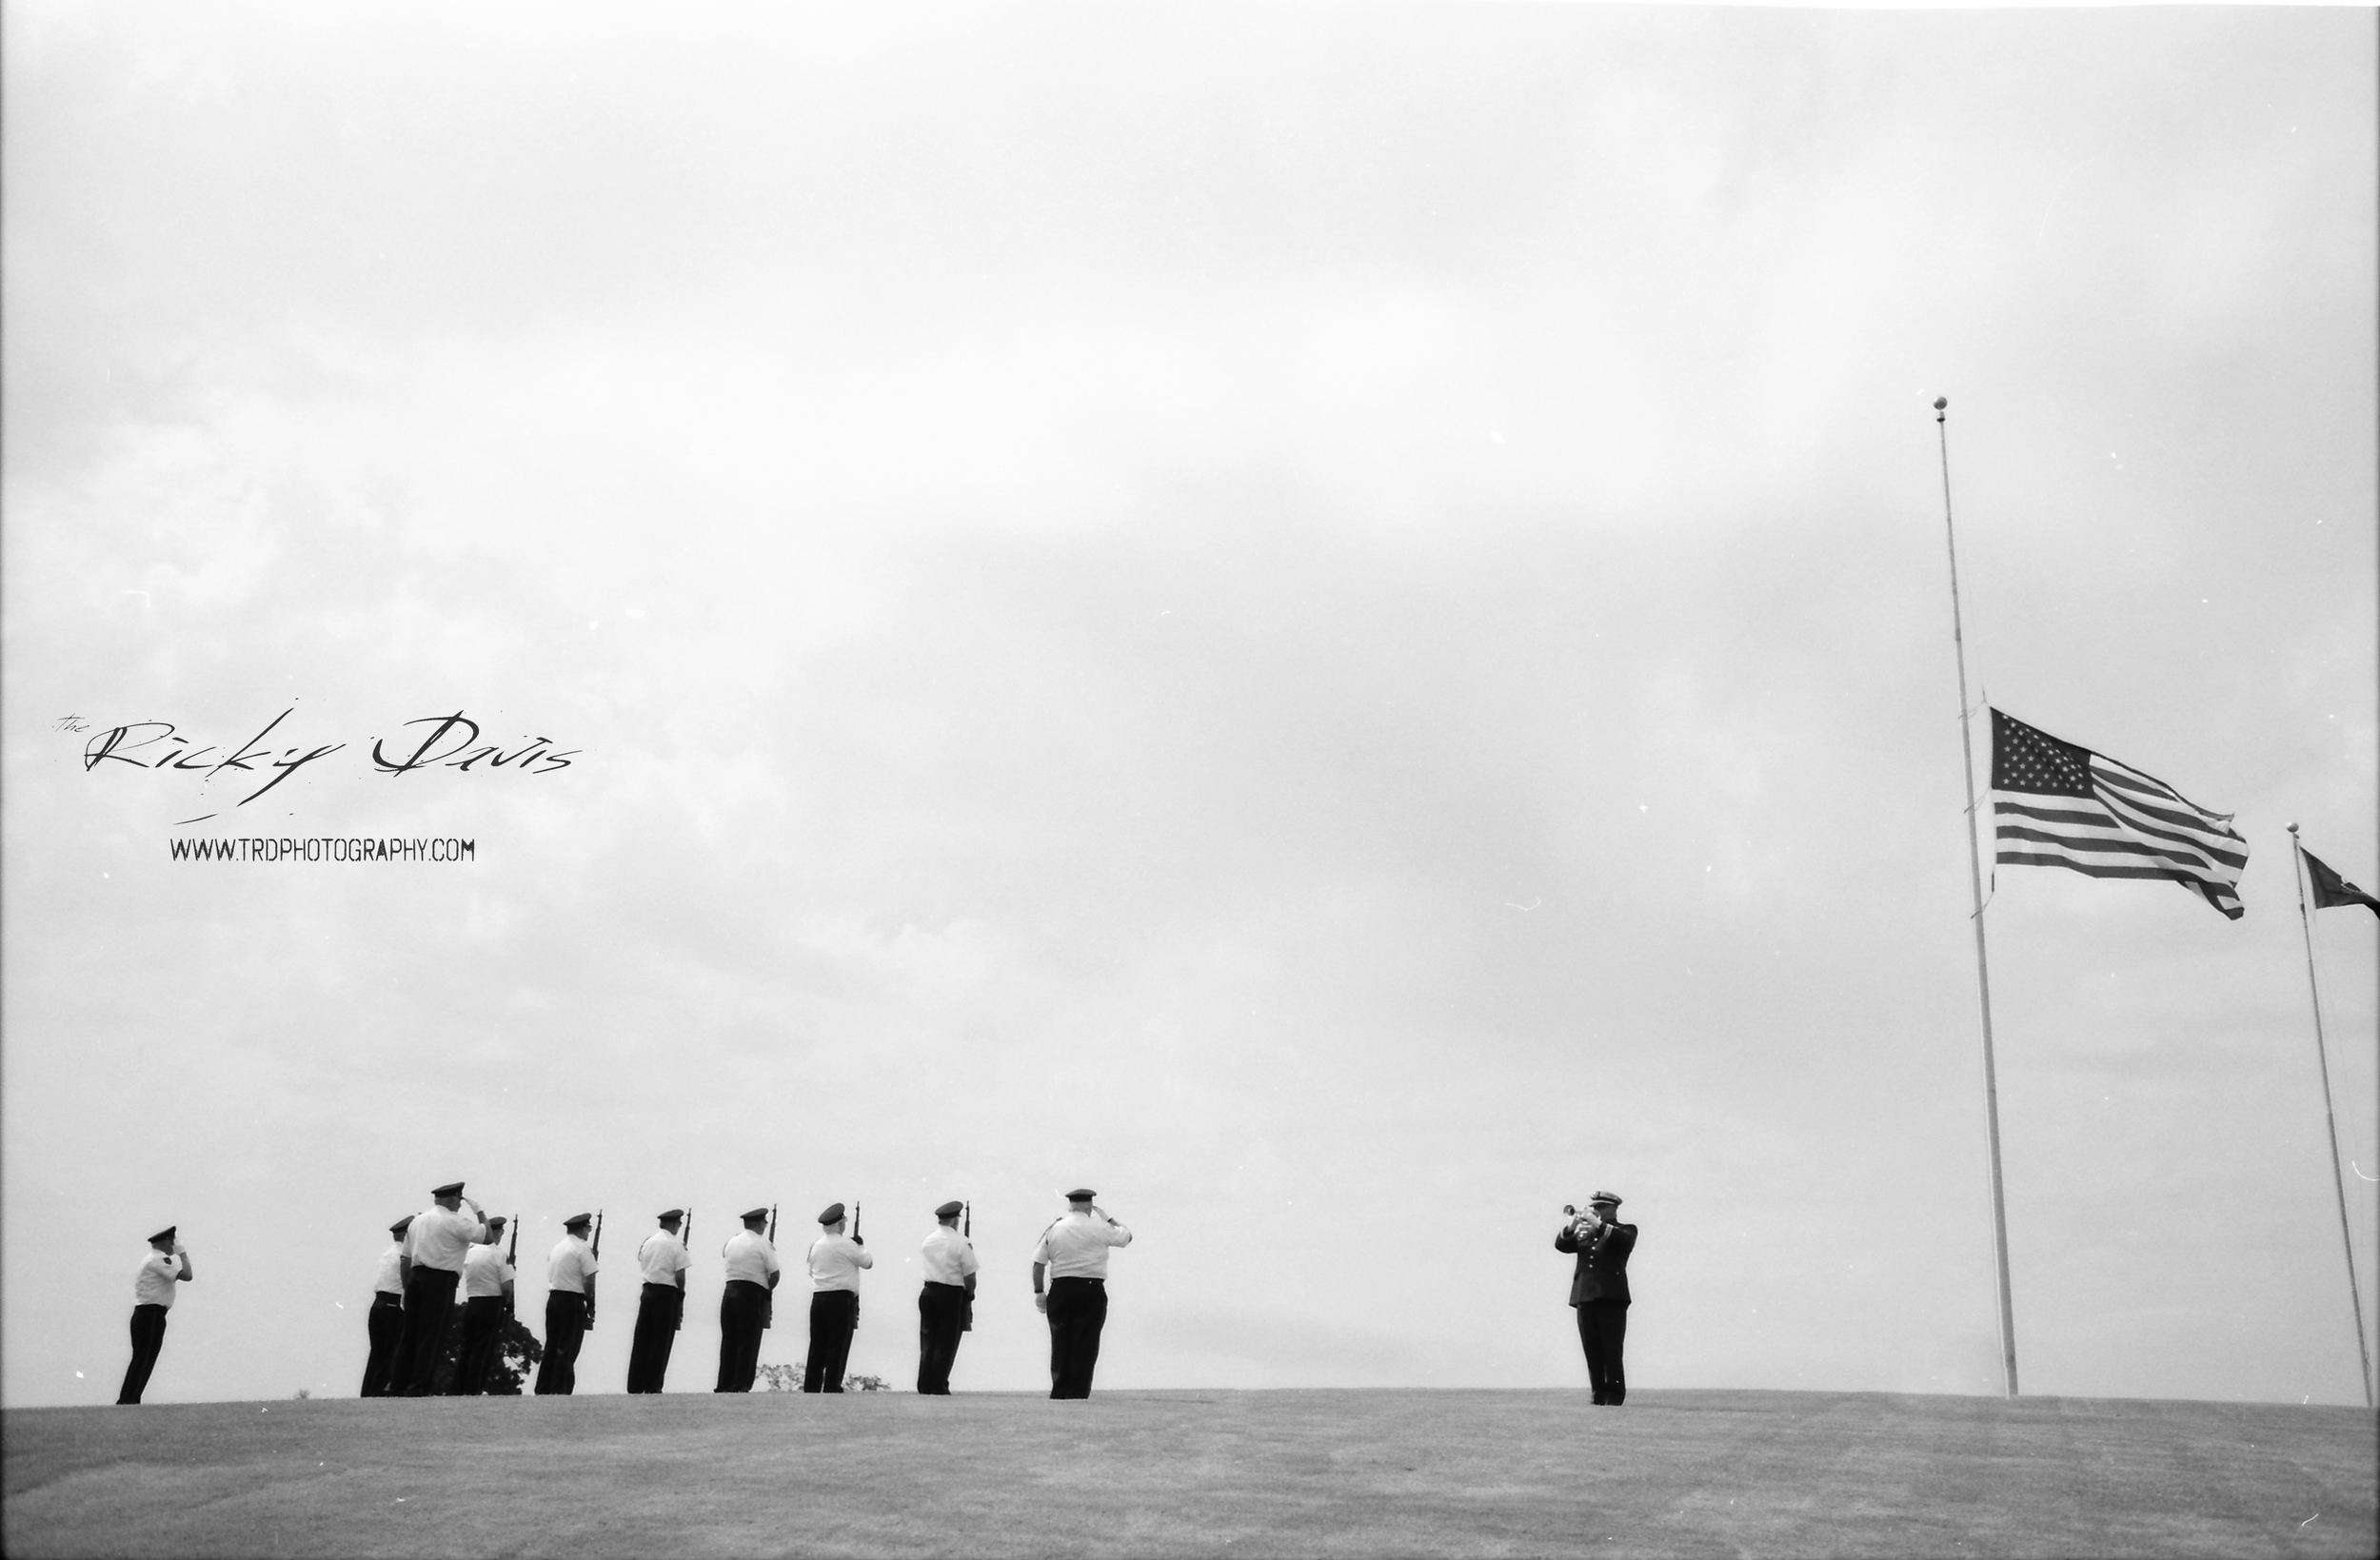 21 Gun Salute and Taps - Vietnam Veterans of America Chapter 203 - Bugles Across America - David A. Cox - Photo by Photographer Ricky Davis of TRD Photography - Film - Tmax 100